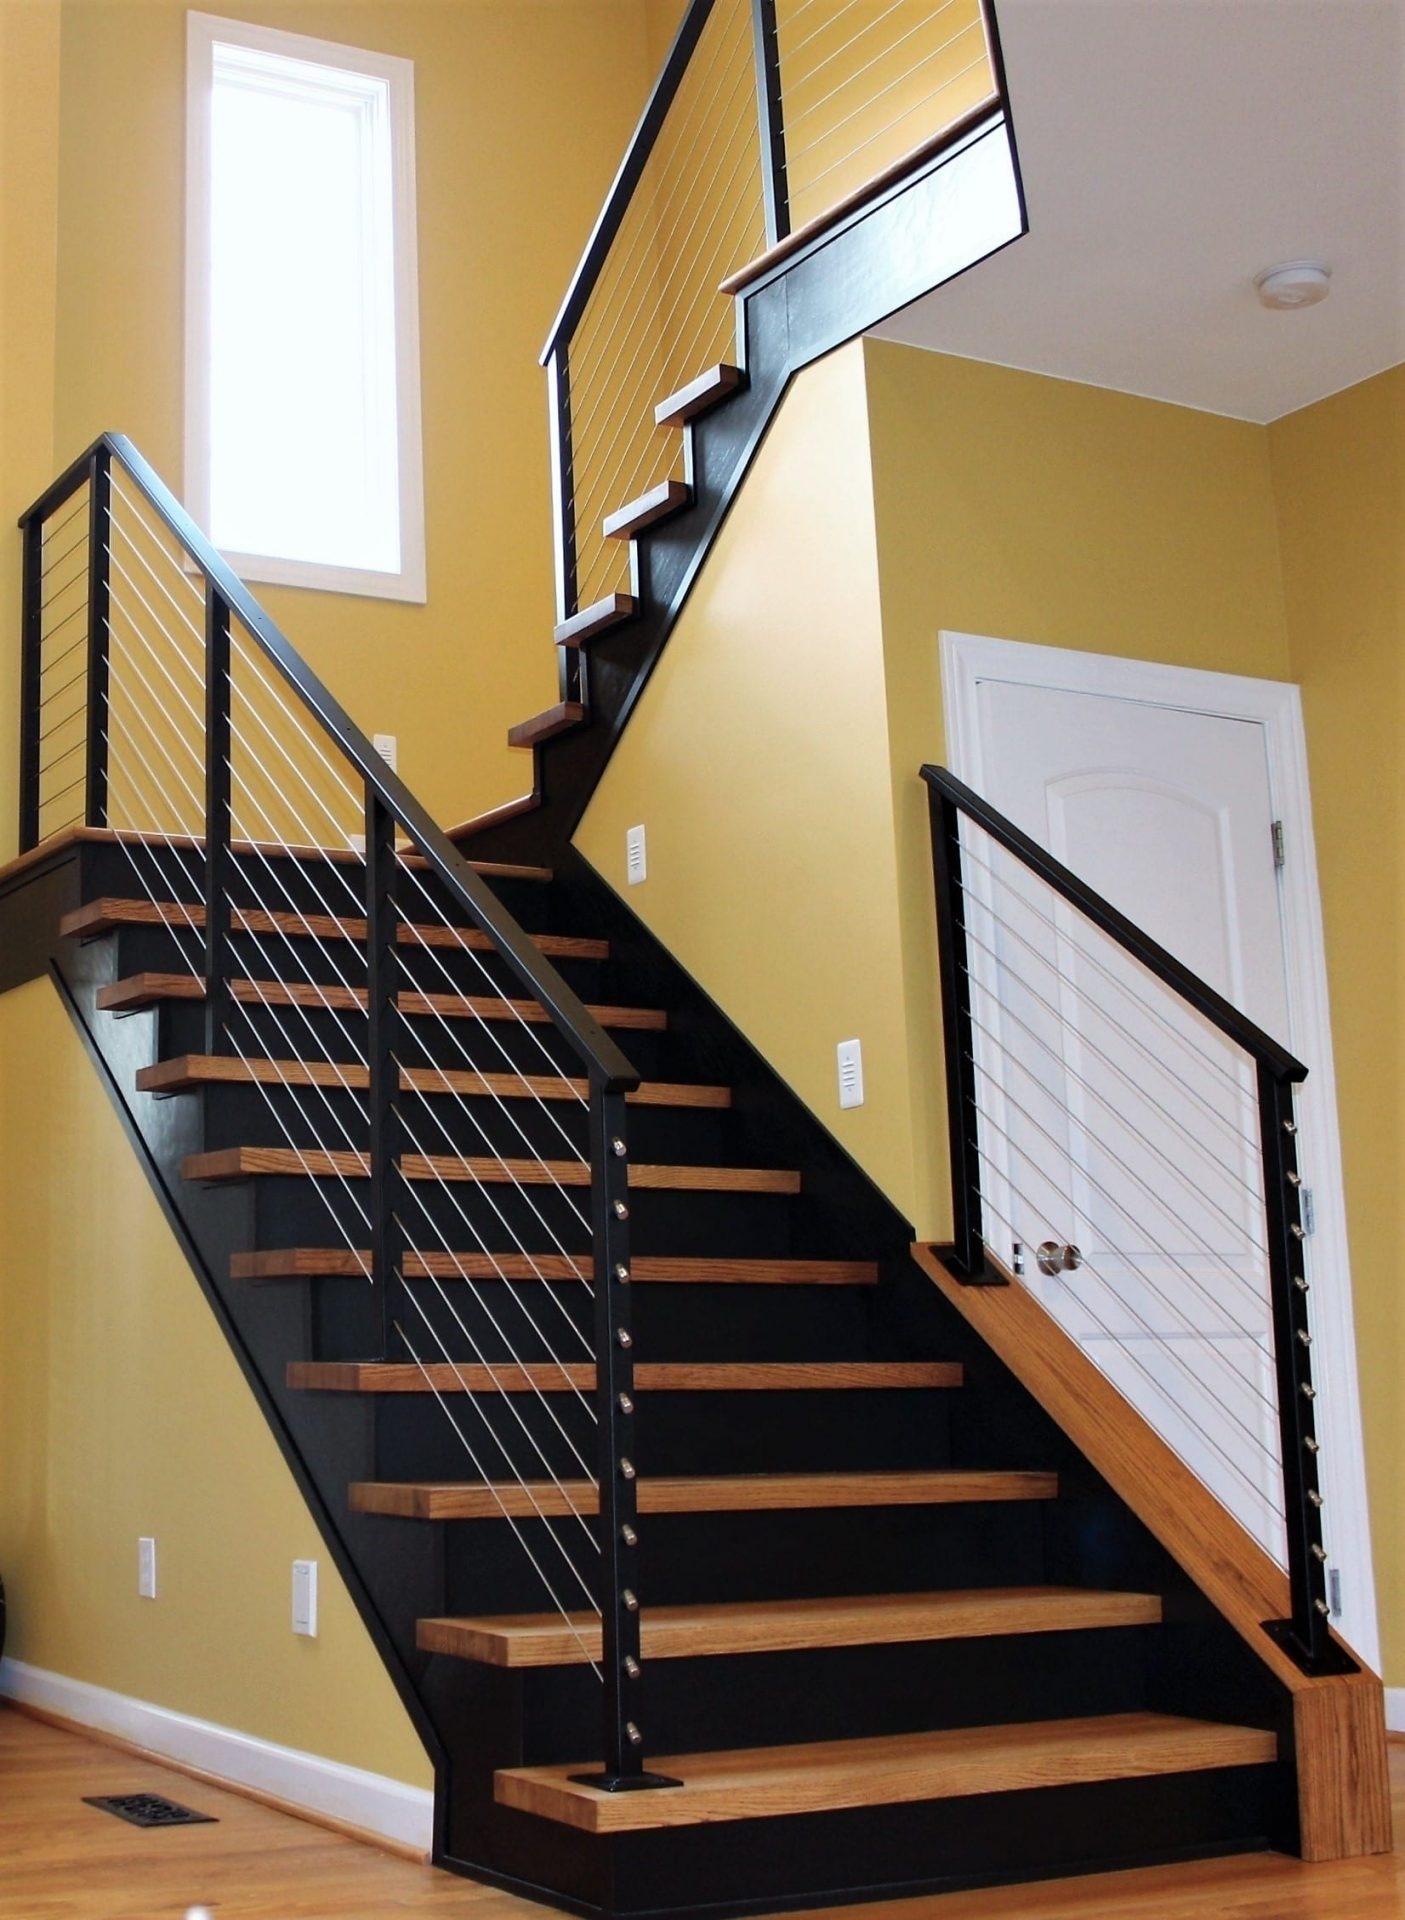 Cable Rail For Interior Wood Stairs Great Lakes Metal Fabrication | Metal And Wood Interior Railings | Contemporary | Art Craft | Black Glass Interior | Wood Cap | Metal Exterior Brown